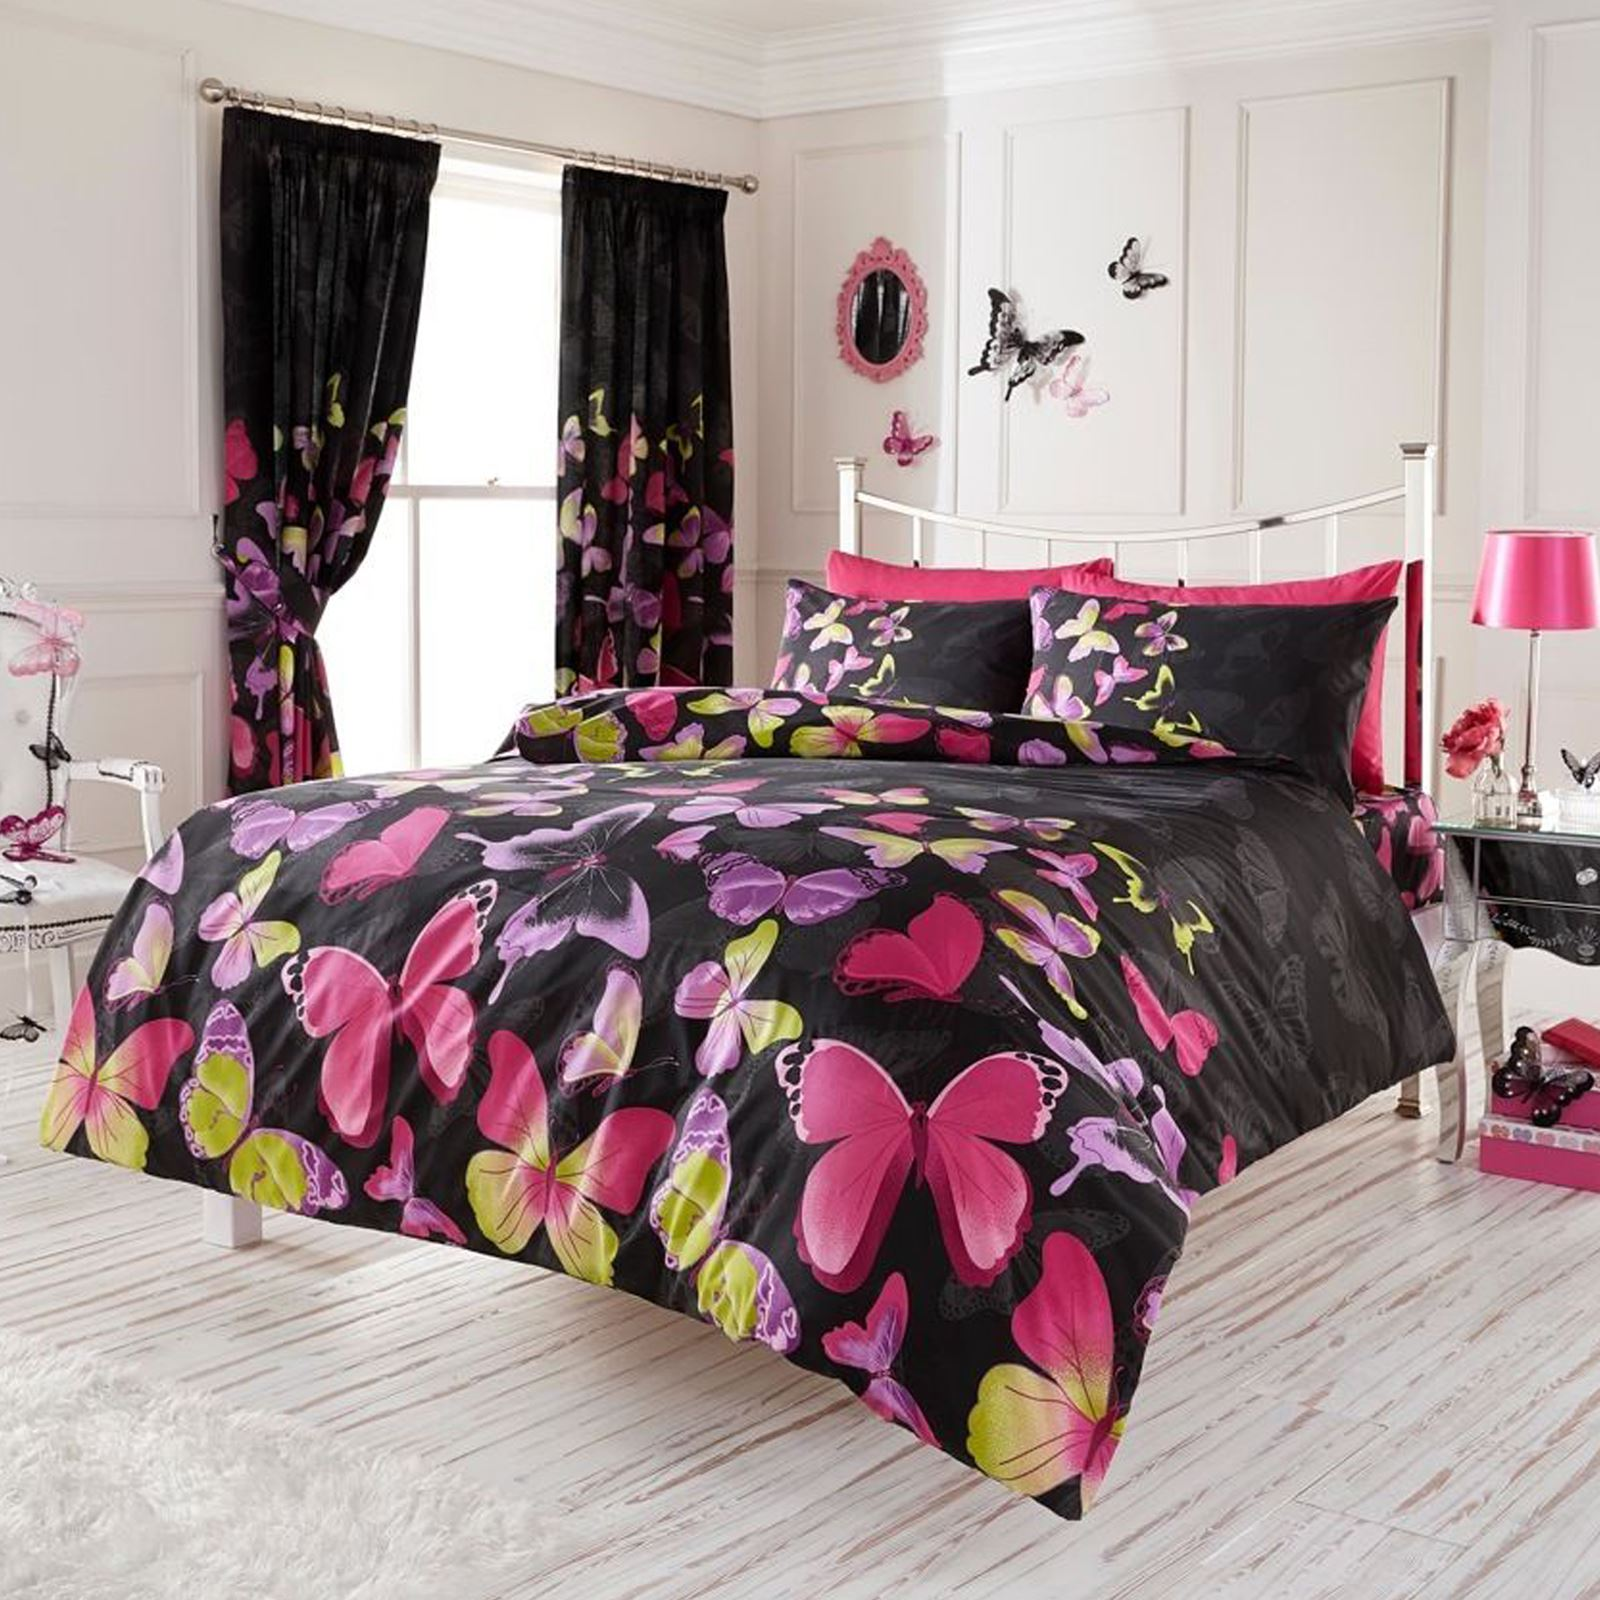 fashion butterfly single double or king size duvet cover sets new bedding ebay. Black Bedroom Furniture Sets. Home Design Ideas